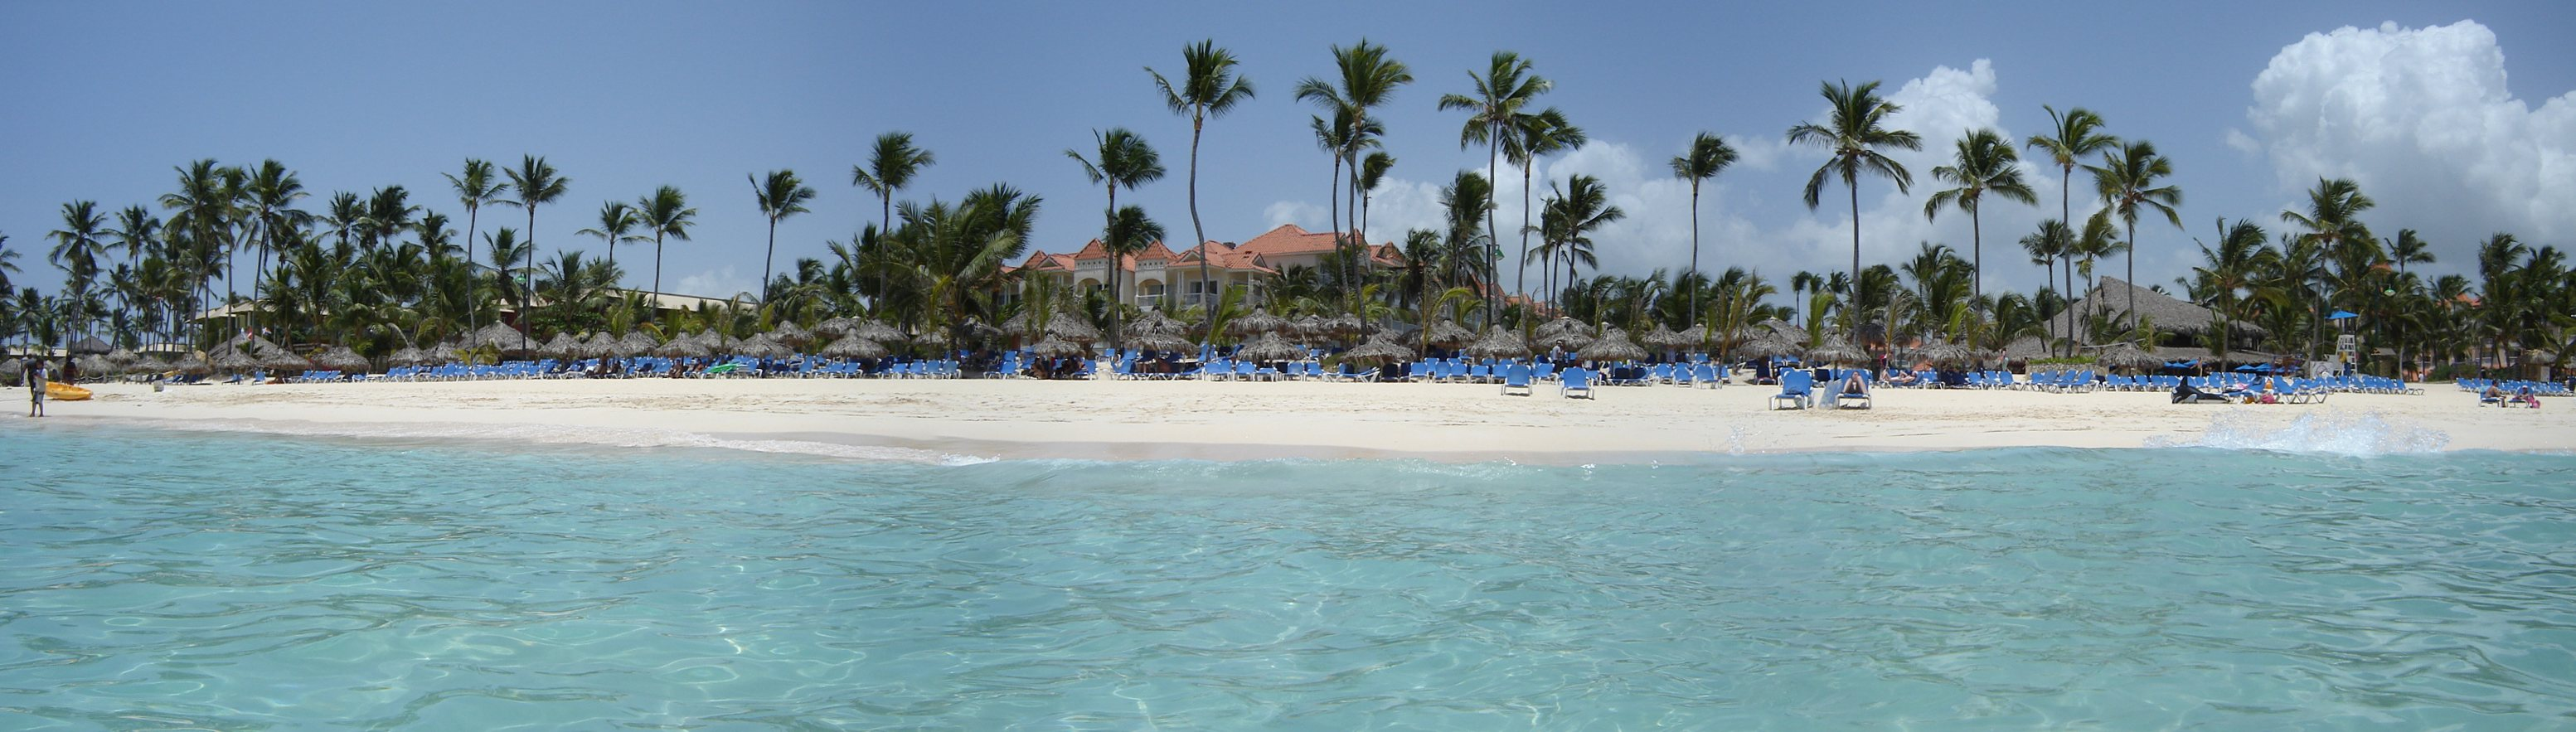 Outbreaks of illness strike down multiple families at Royalton Punta Cana Resort